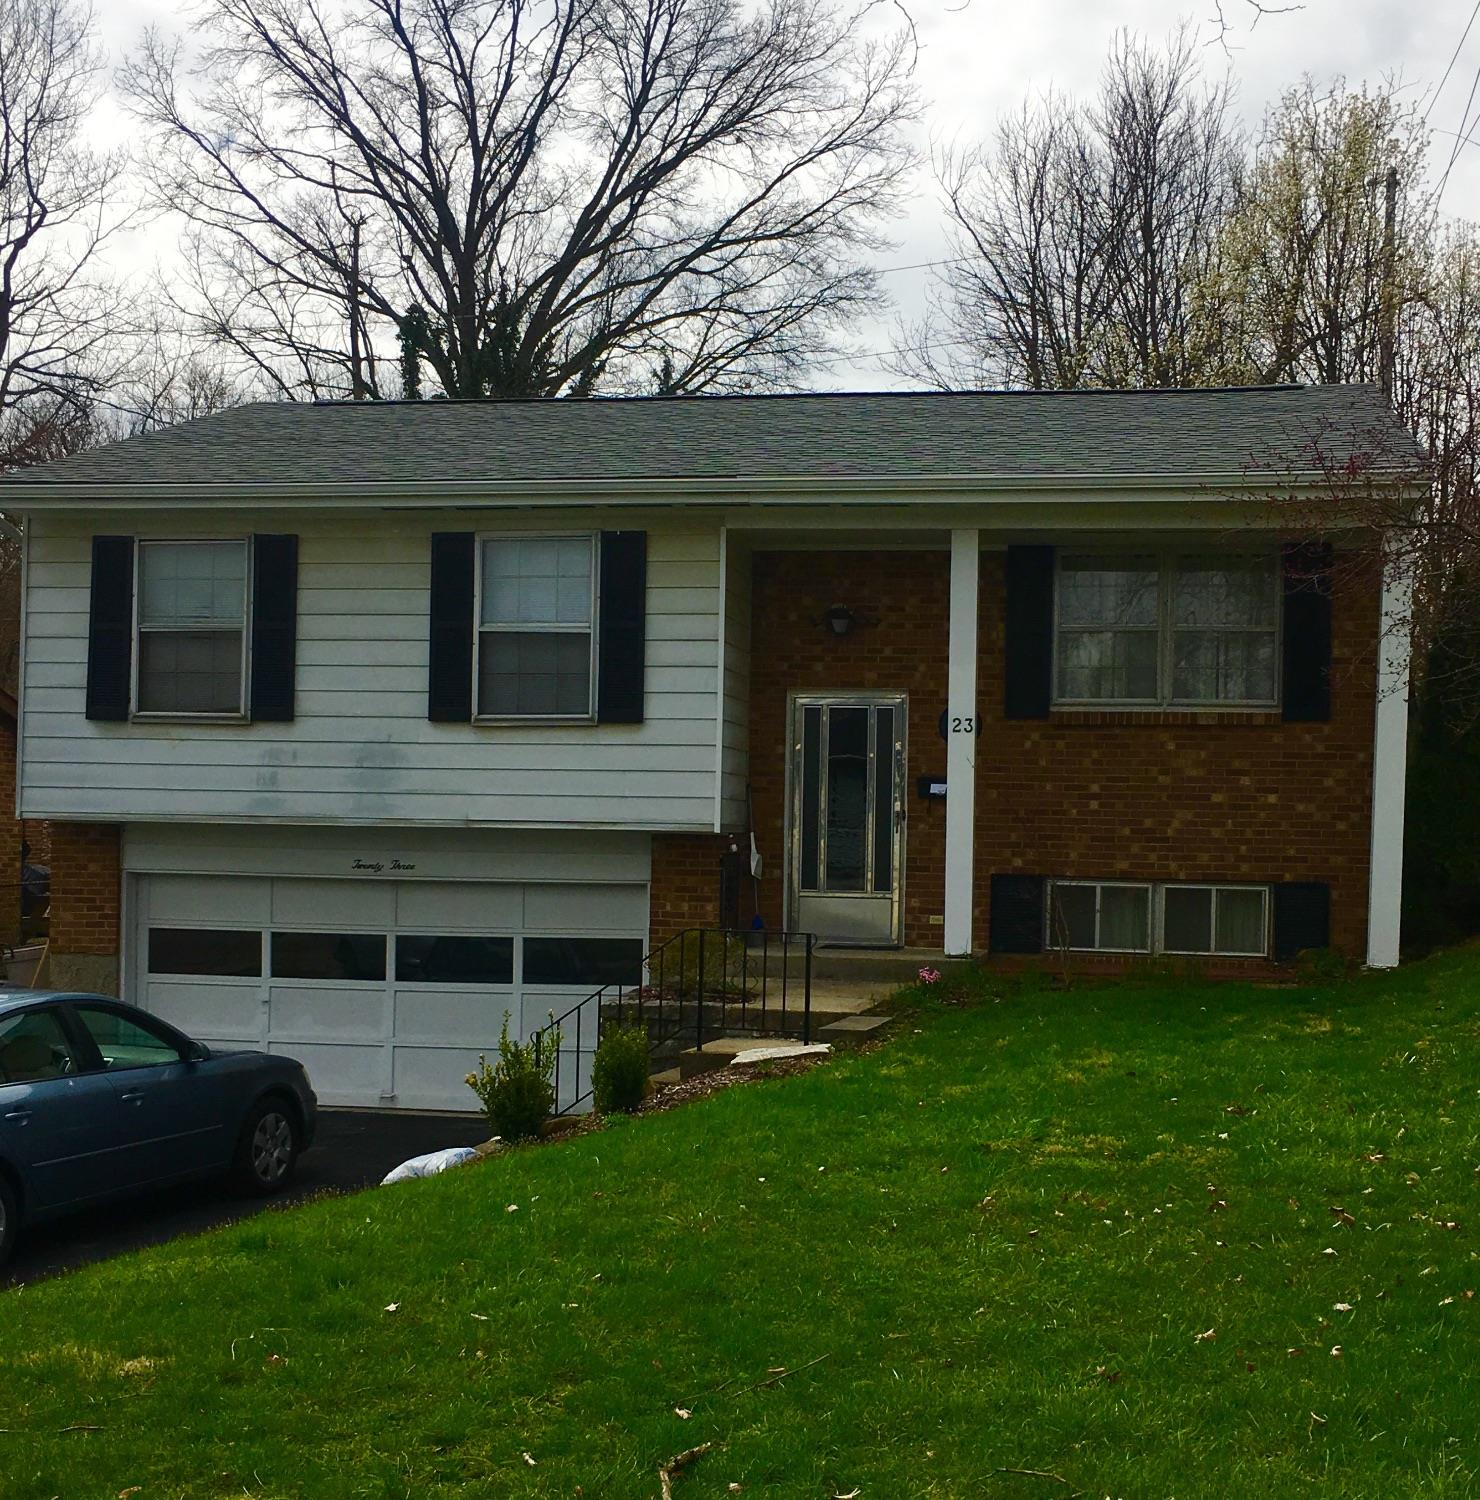 Property for sale at 23 Judiann Court, Reading,  Ohio 45215